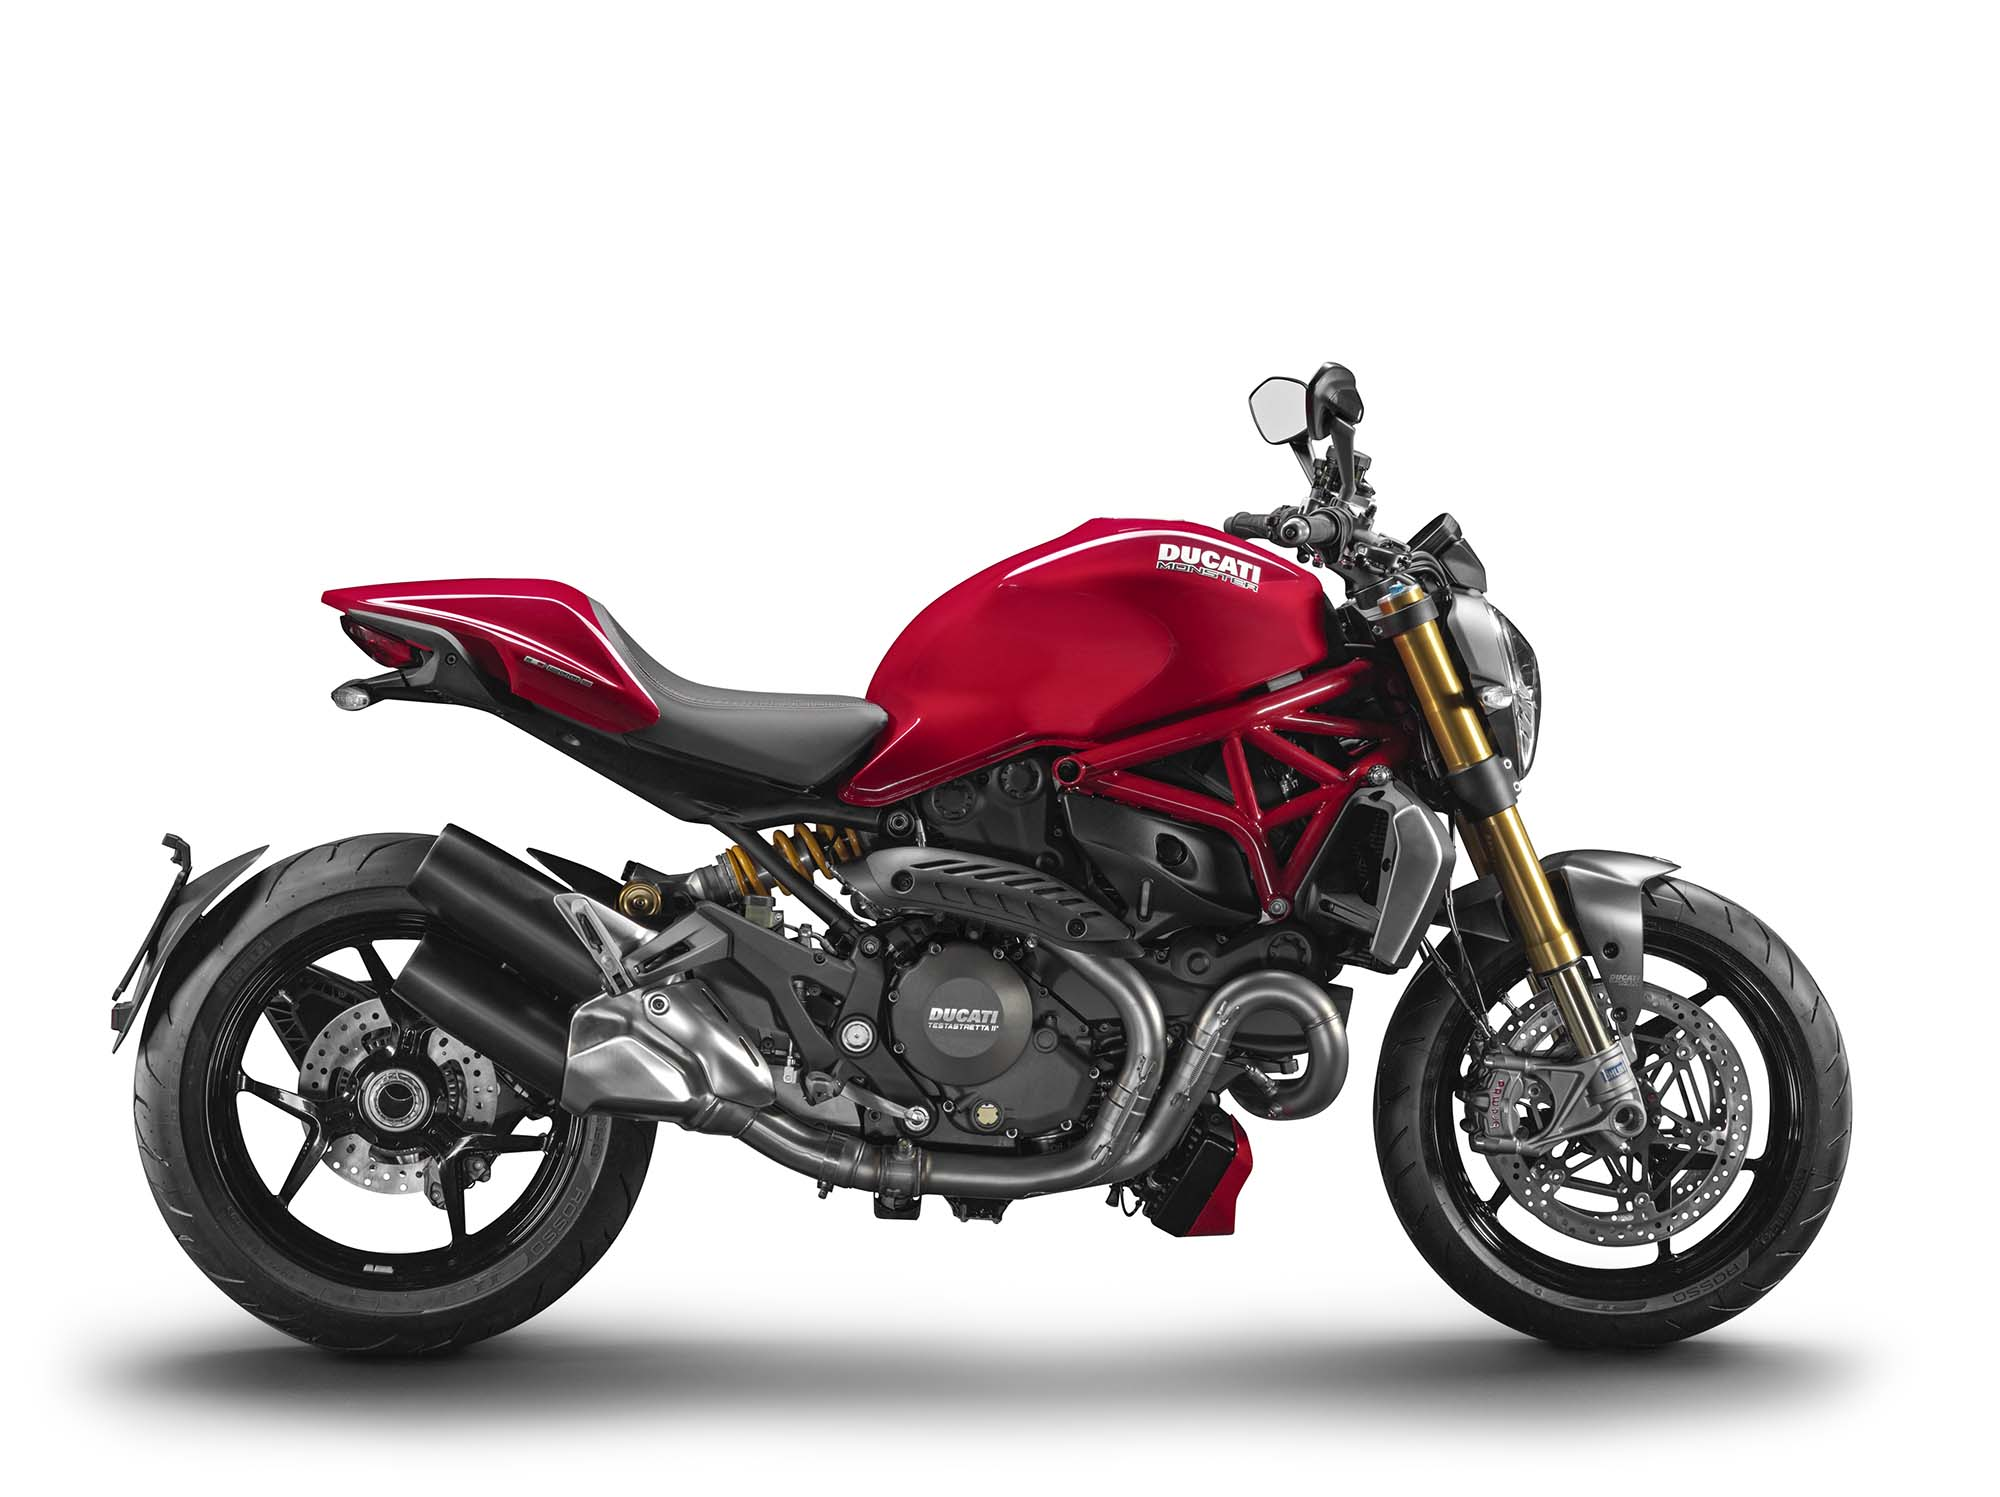 2014 ducati monster 1200 s moar monster asphalt rubber. Black Bedroom Furniture Sets. Home Design Ideas